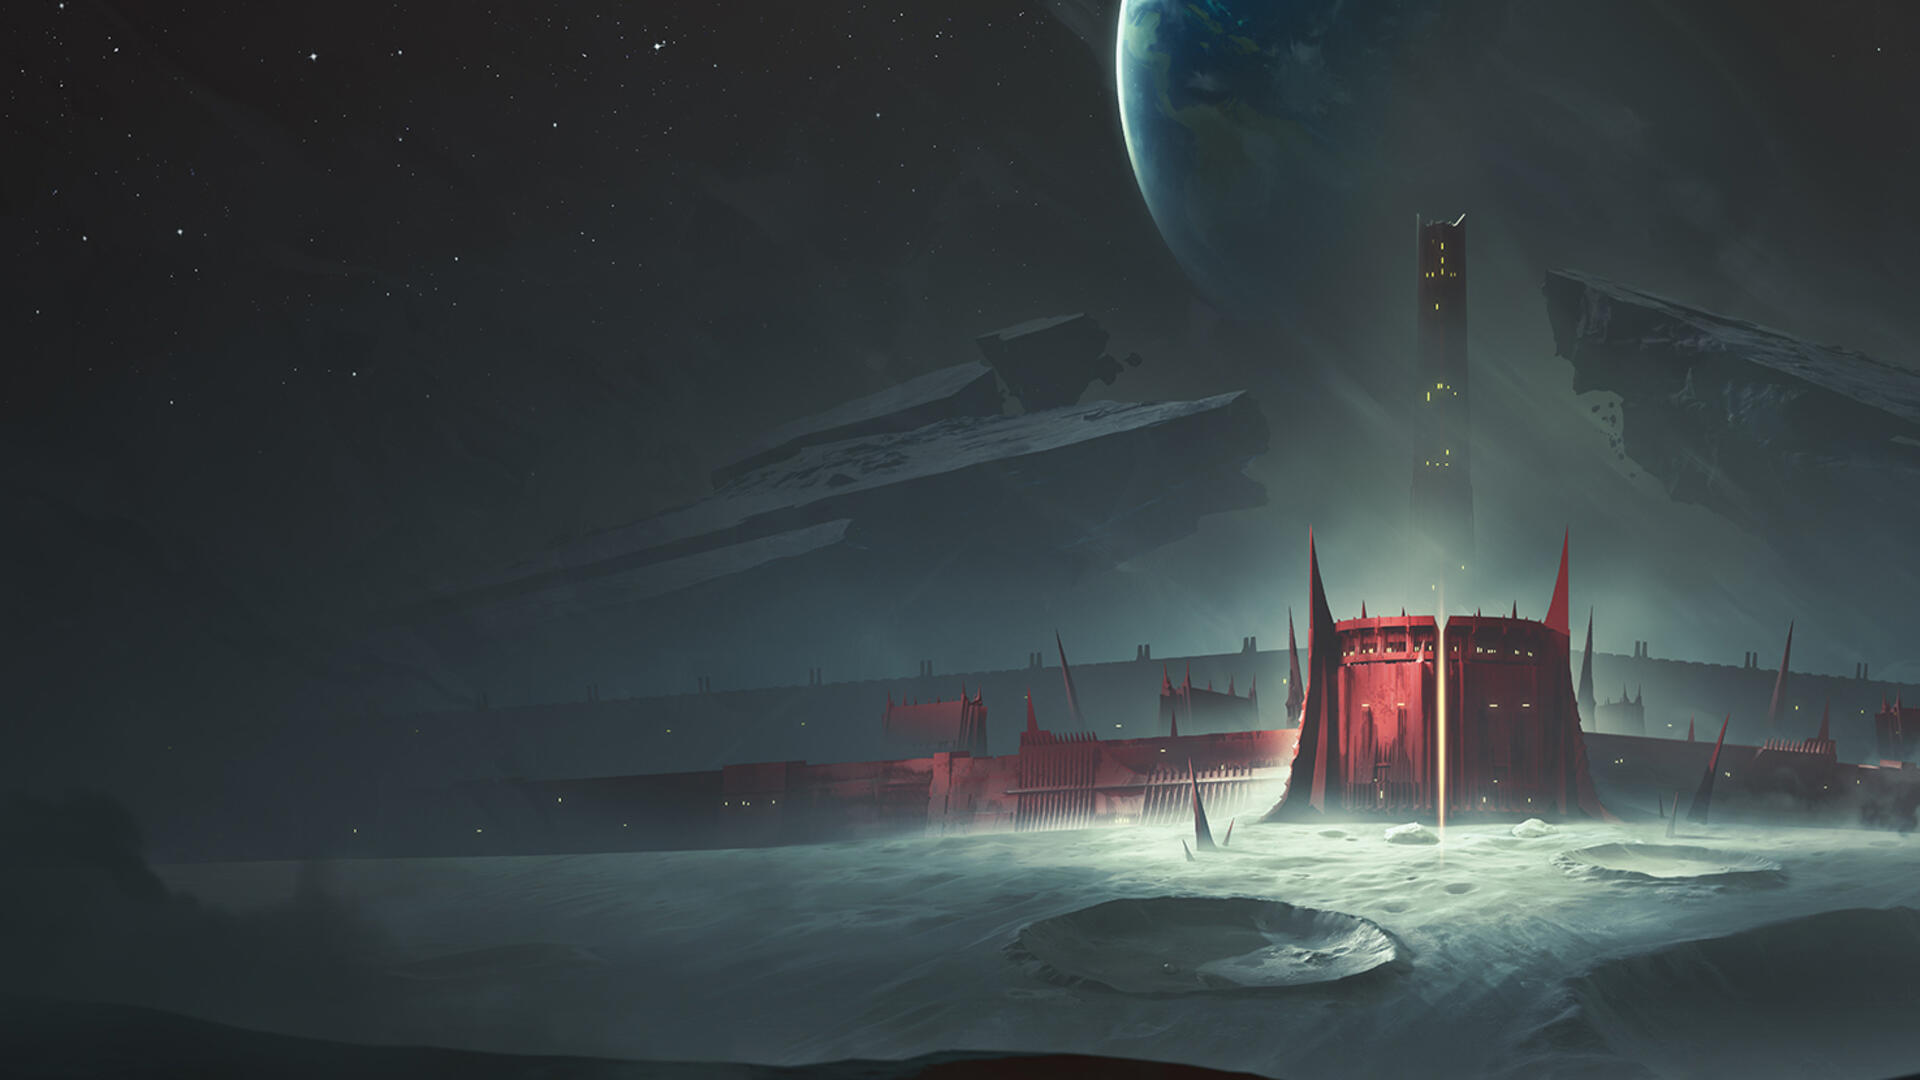 Destiny 2: Shadowkeep's Campaign Ending Has Major Implications For What's Next